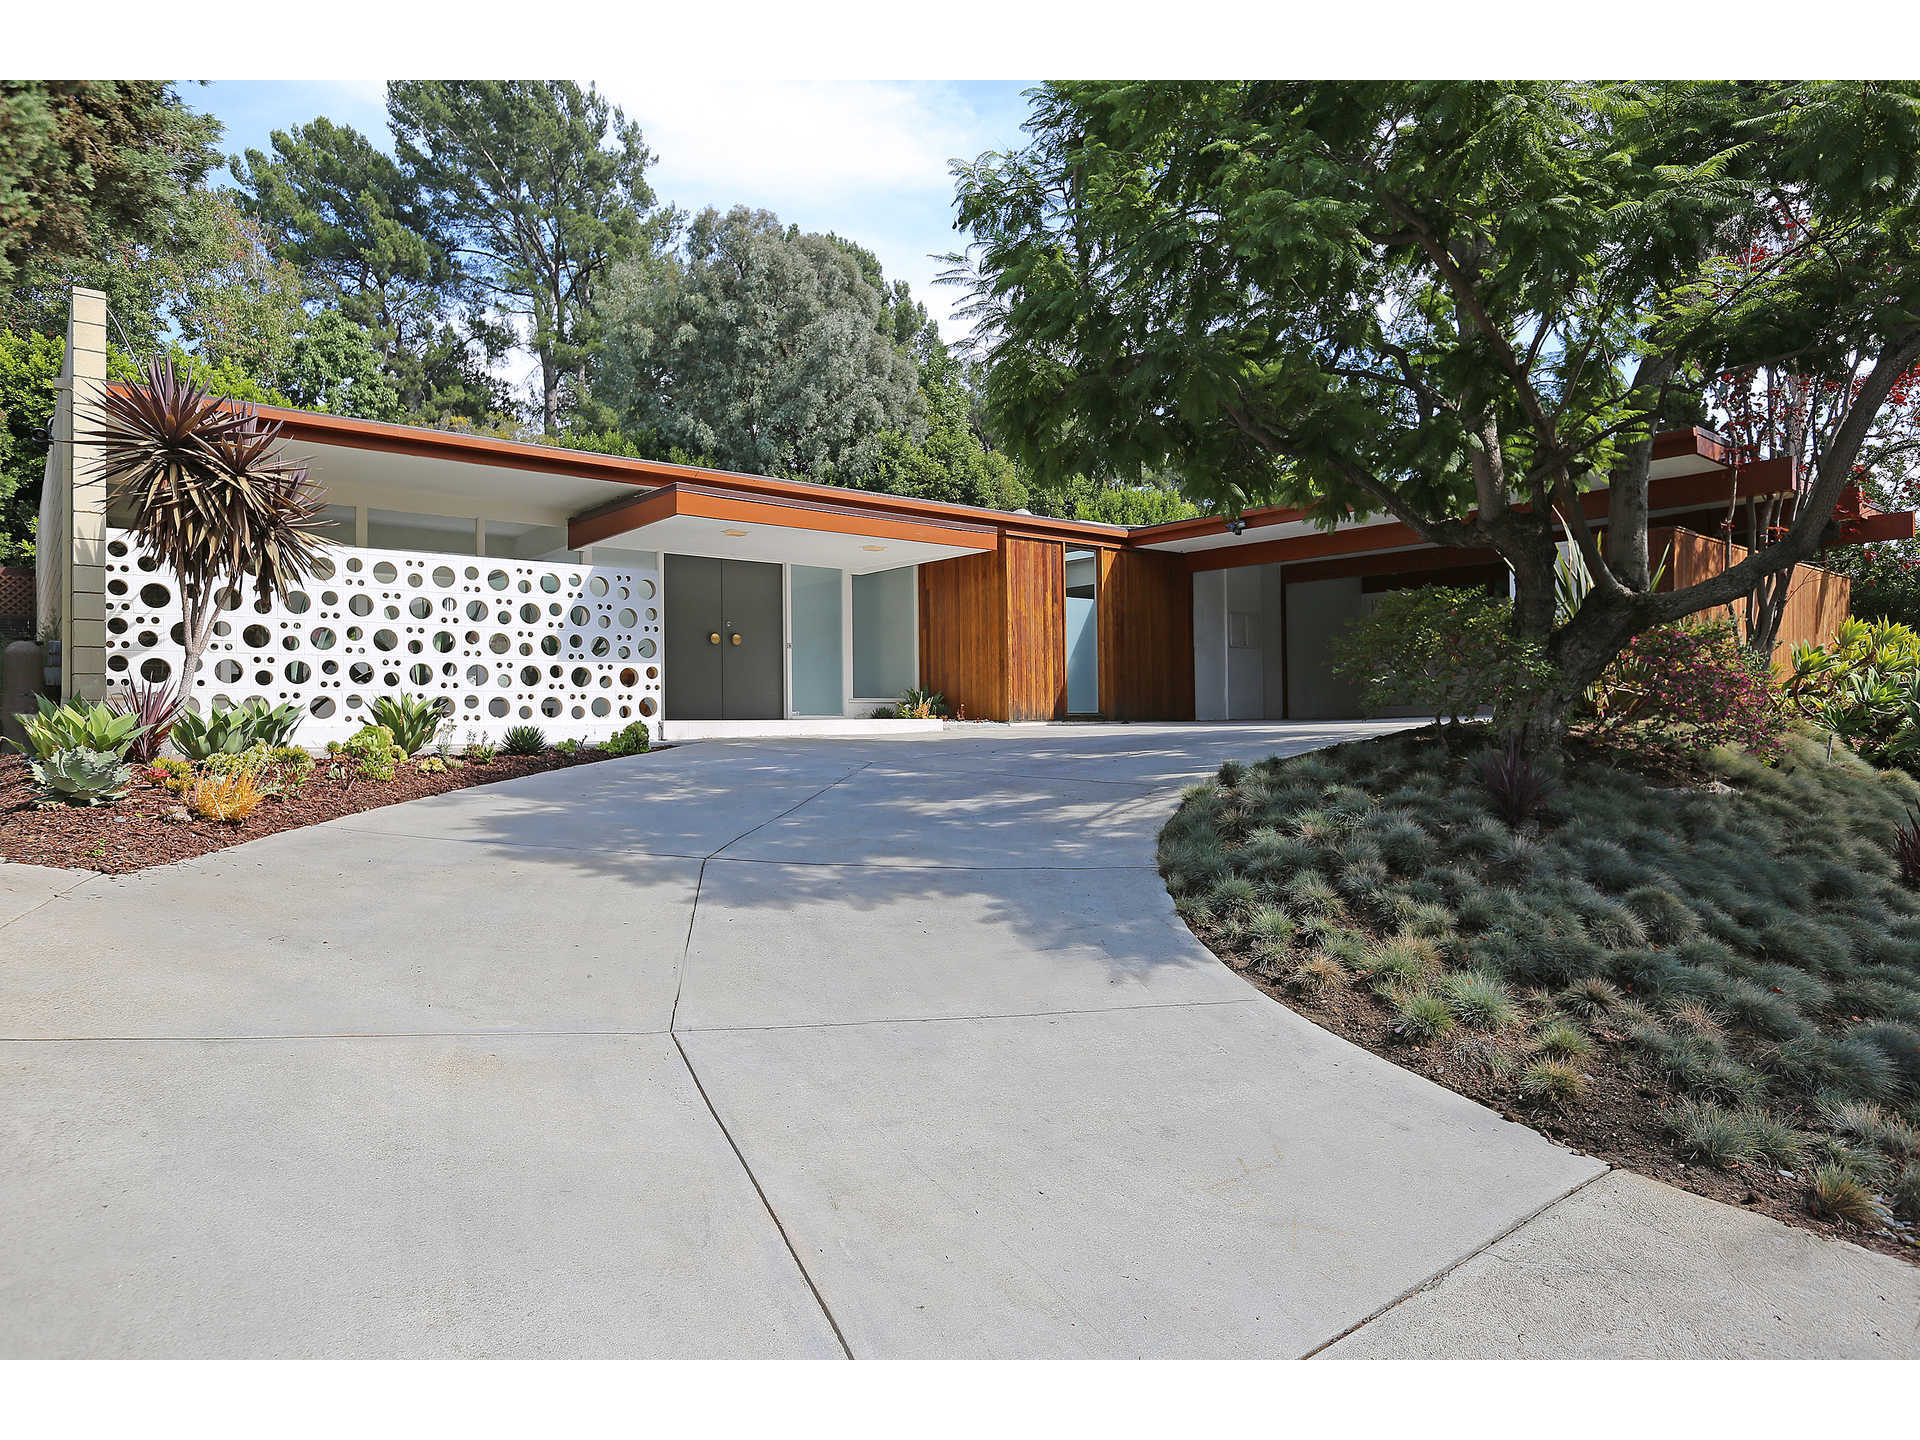 http://www.midcenturyhome.com/e-stewart-williams-palms-springs-mid-century/